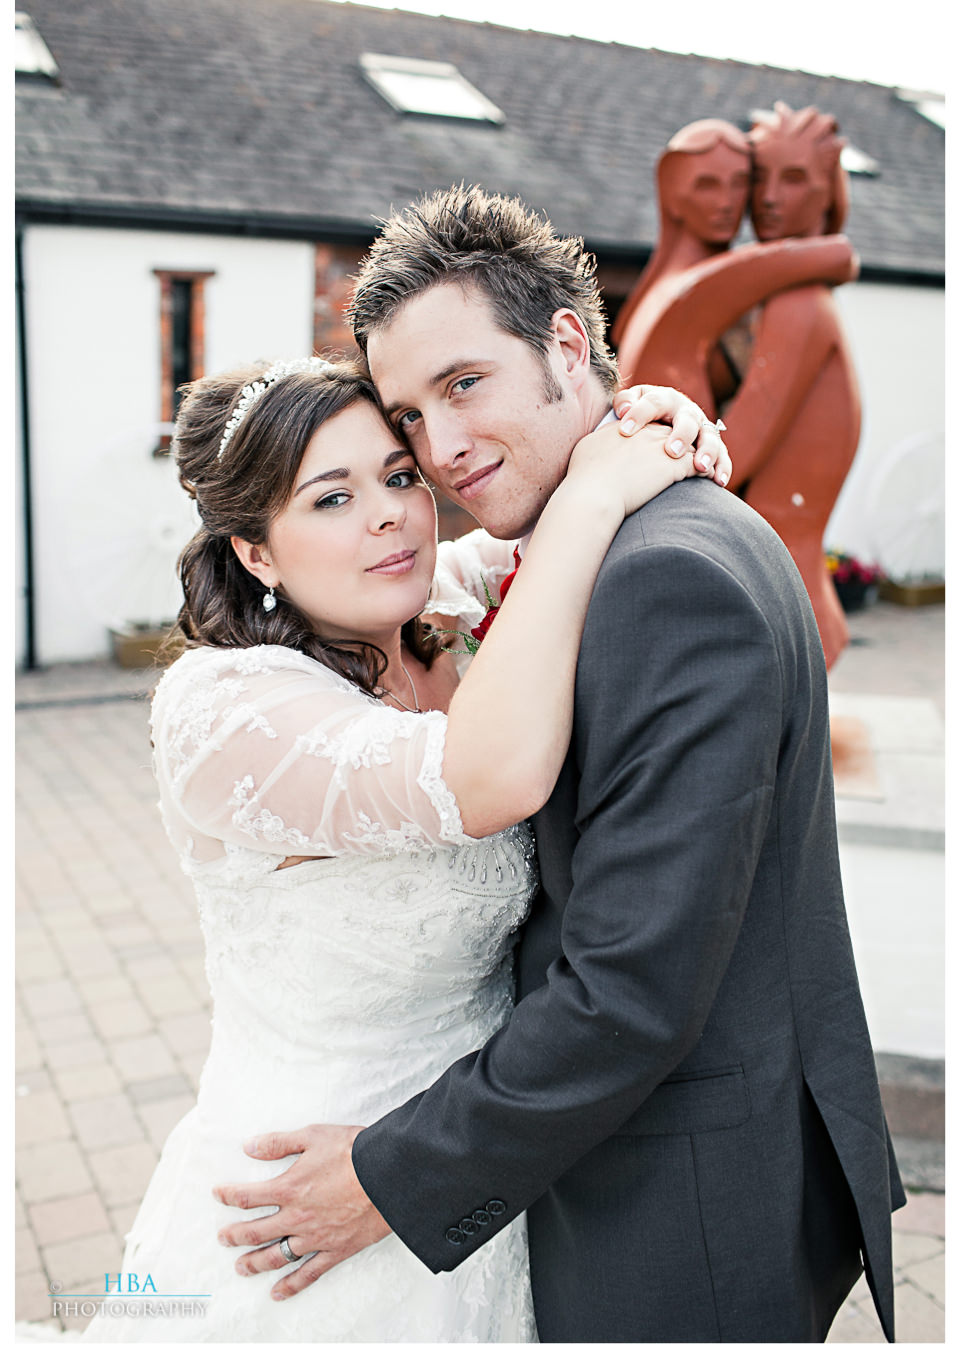 Mark & Sandie's wedding at Comlongon Castle and The Smiths Hotel, Gretna Green. By contemporary photographers HBA Photography